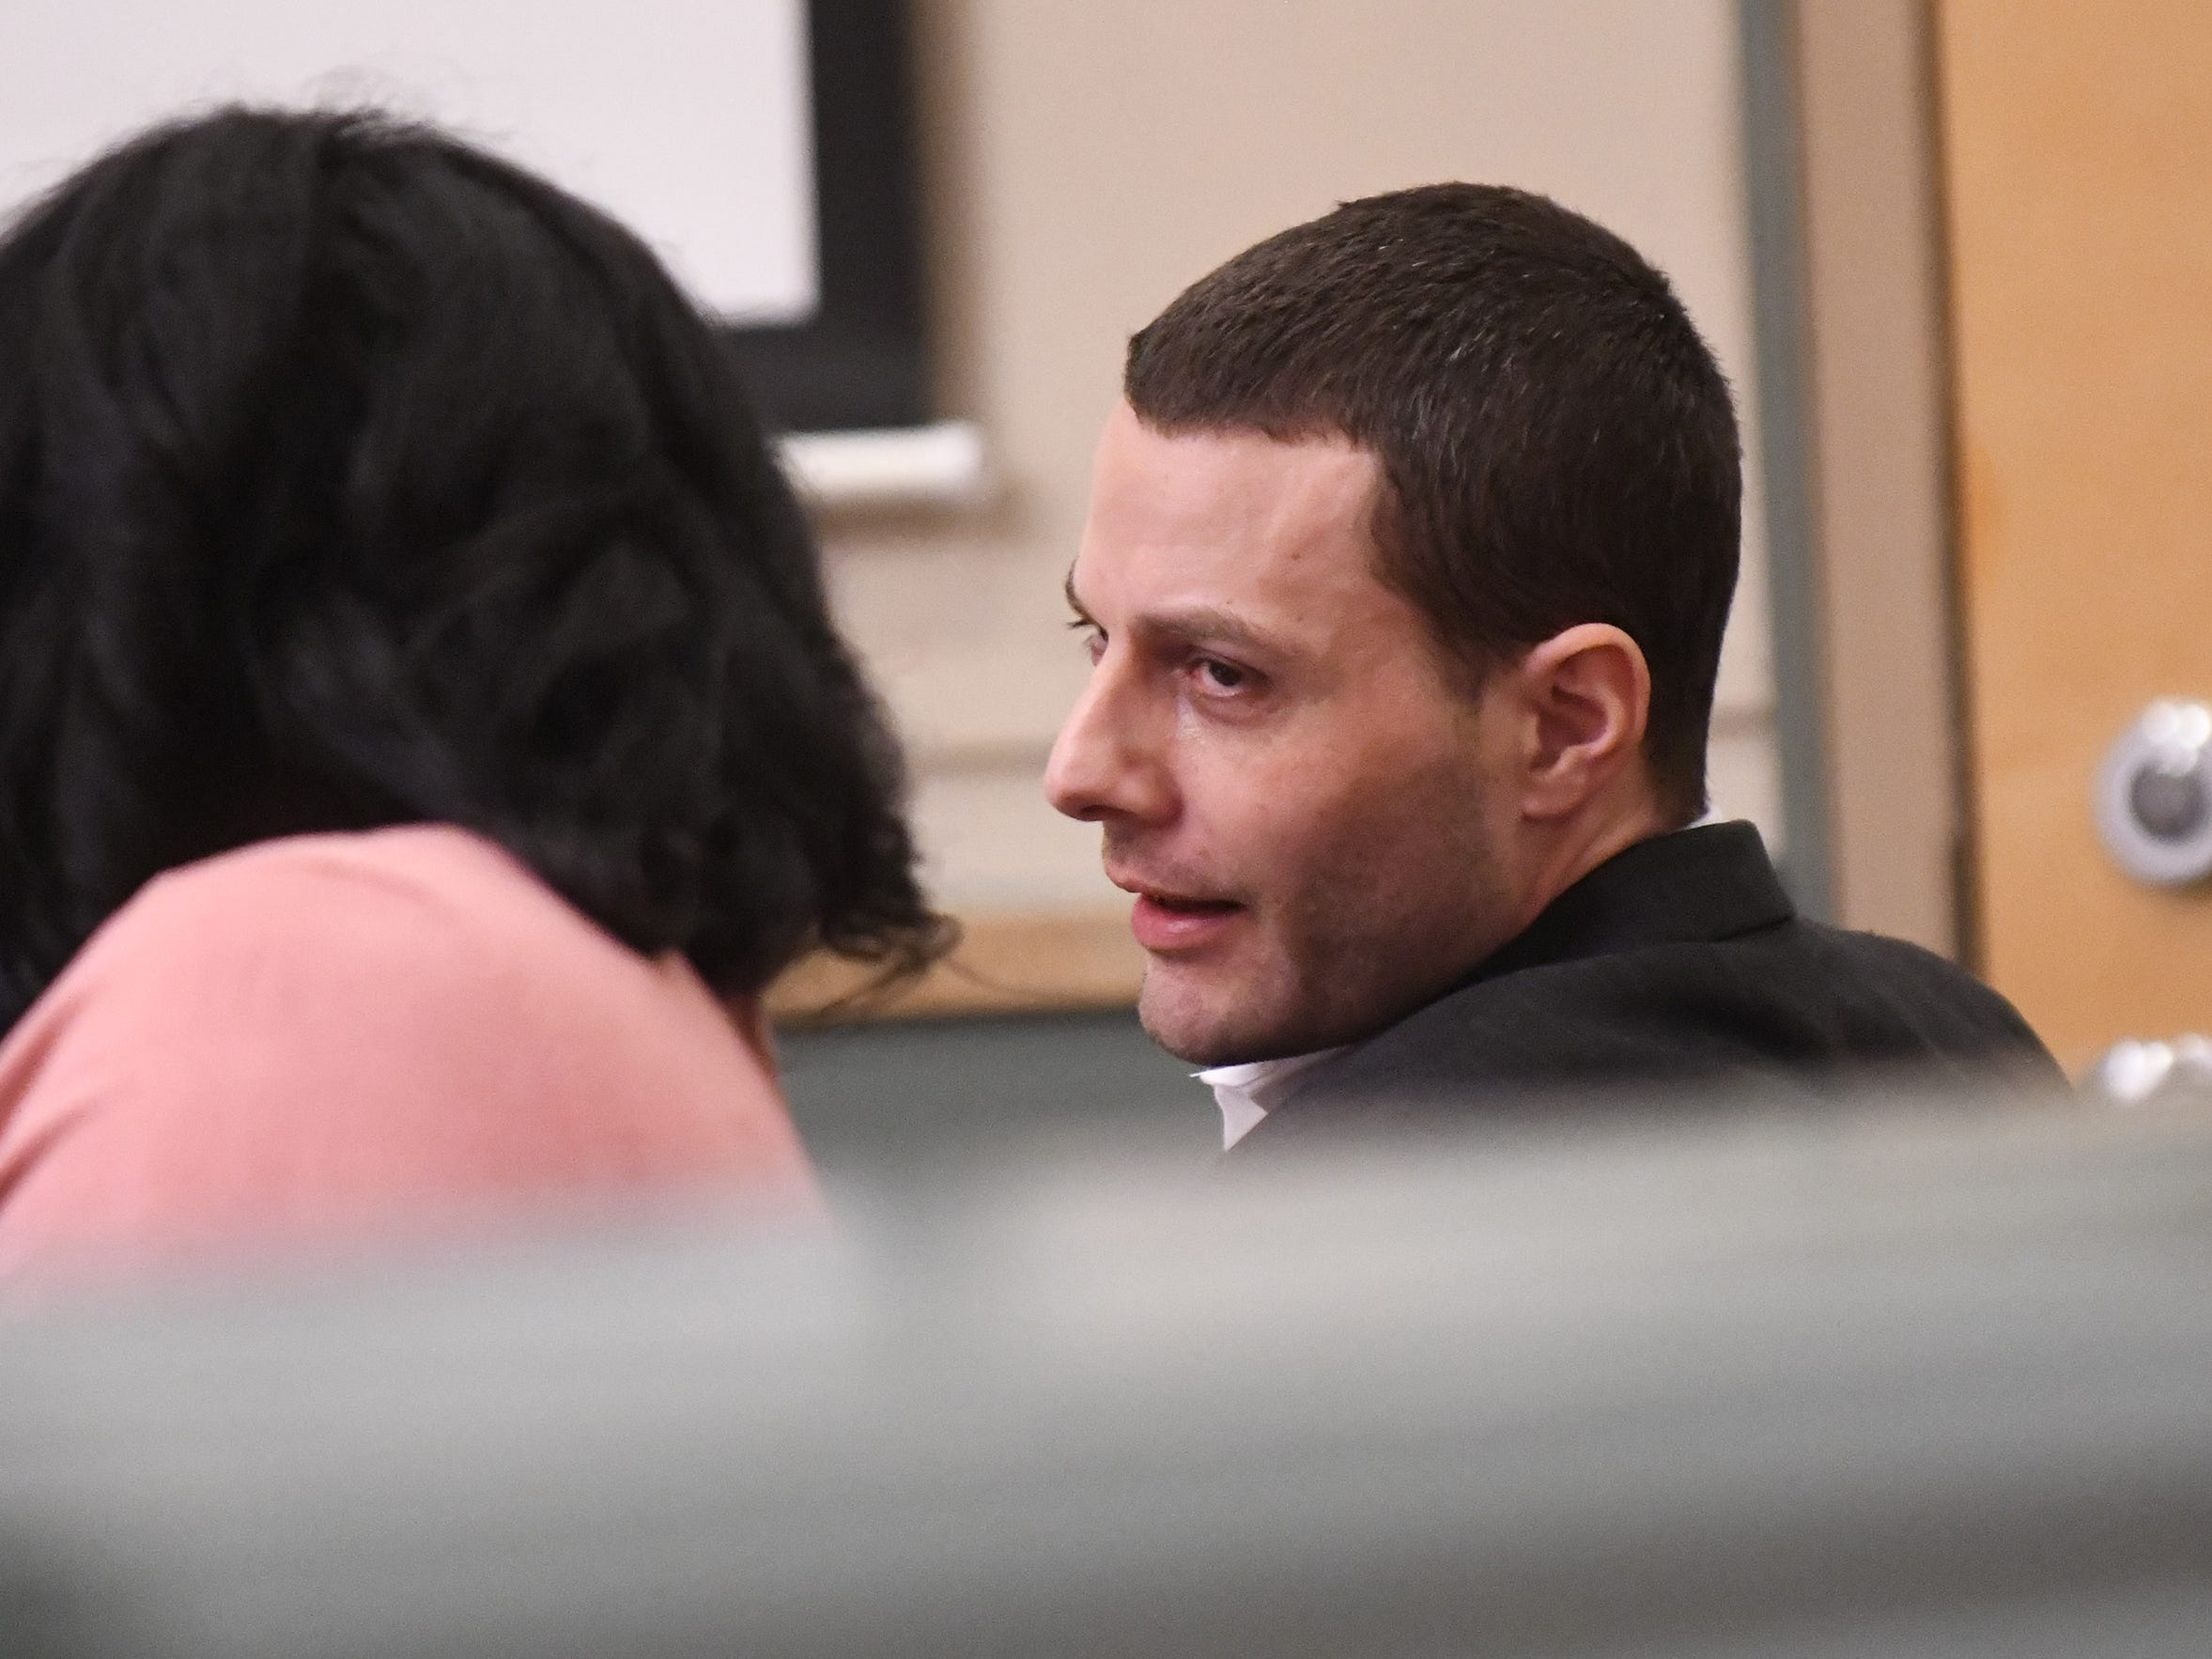 Opening statements began in Cumberland County Superior Court on Thursday in the murder trial of Jeremiah E. Monell, 34, who has been charged with stabbing to death his estranged wife in 2016. 1/3/2019.